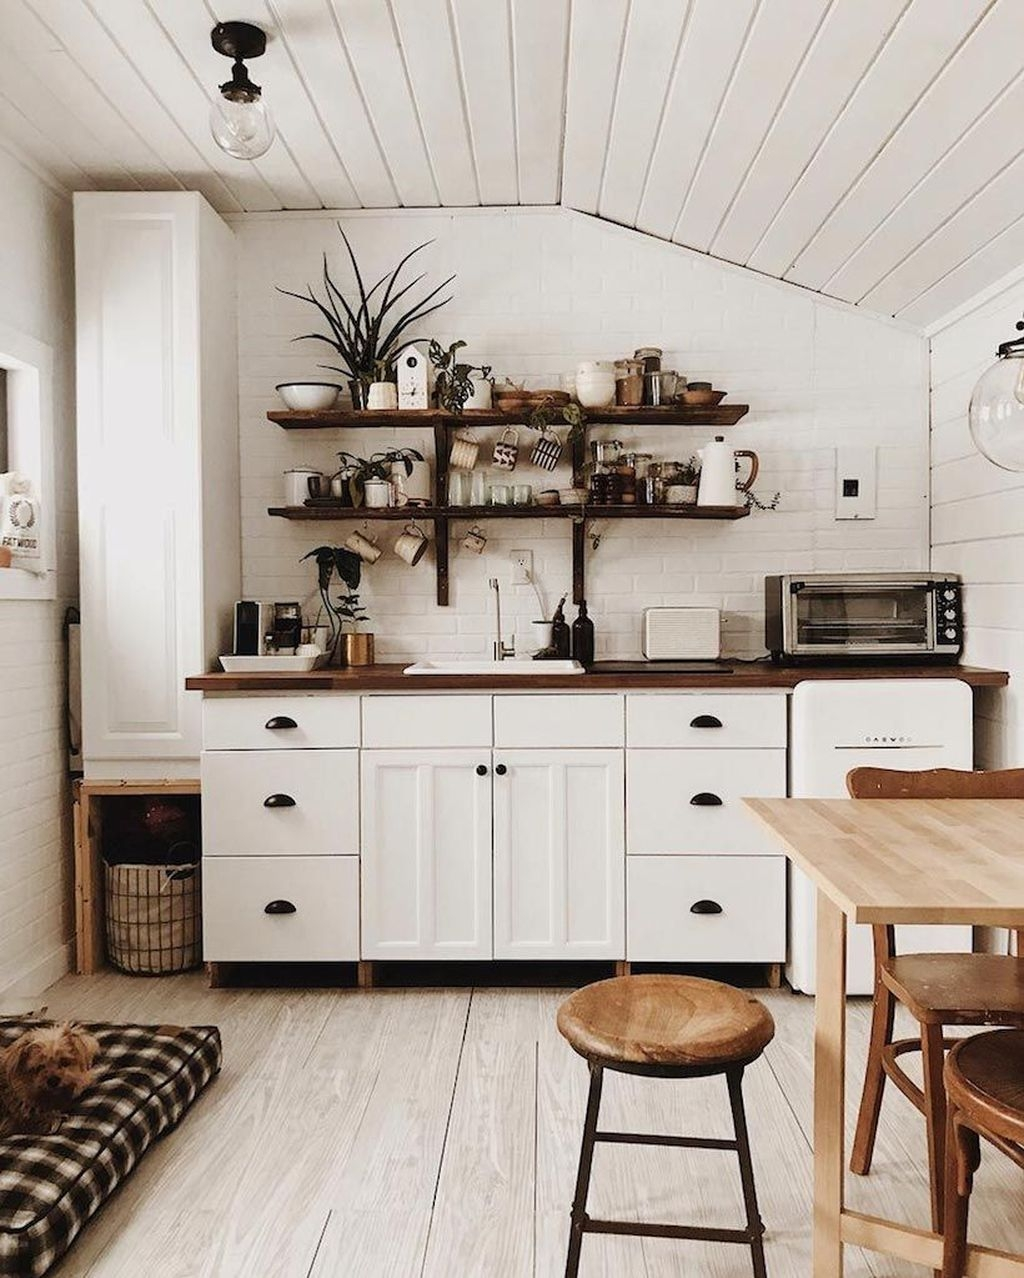 Minimalist Small Space Home Décor Ideas To Inspire You 52